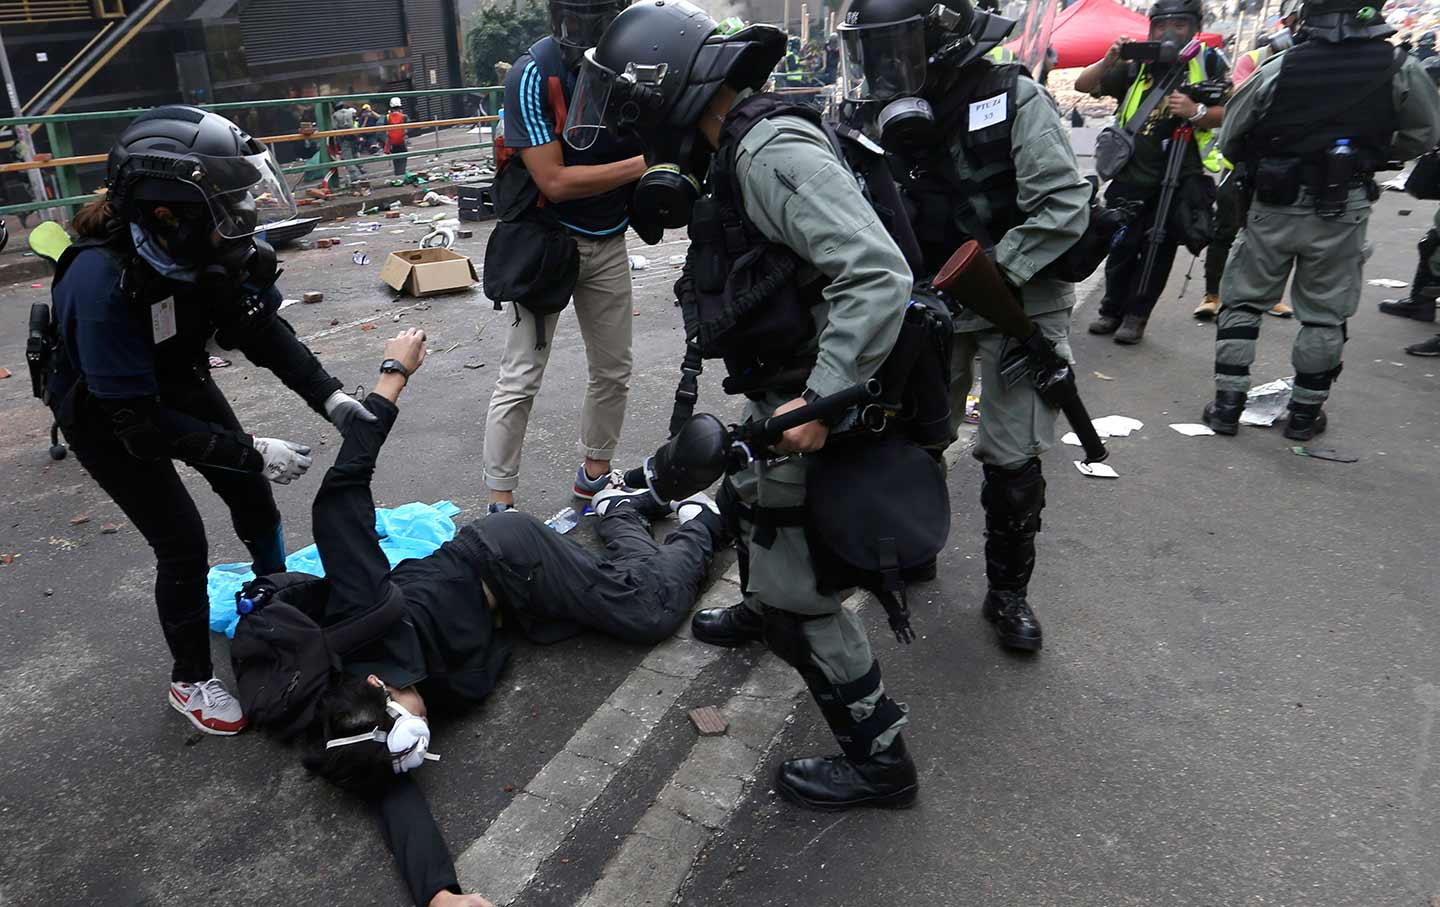 The Hong Kongers Building a Case Against the Police | The Nation